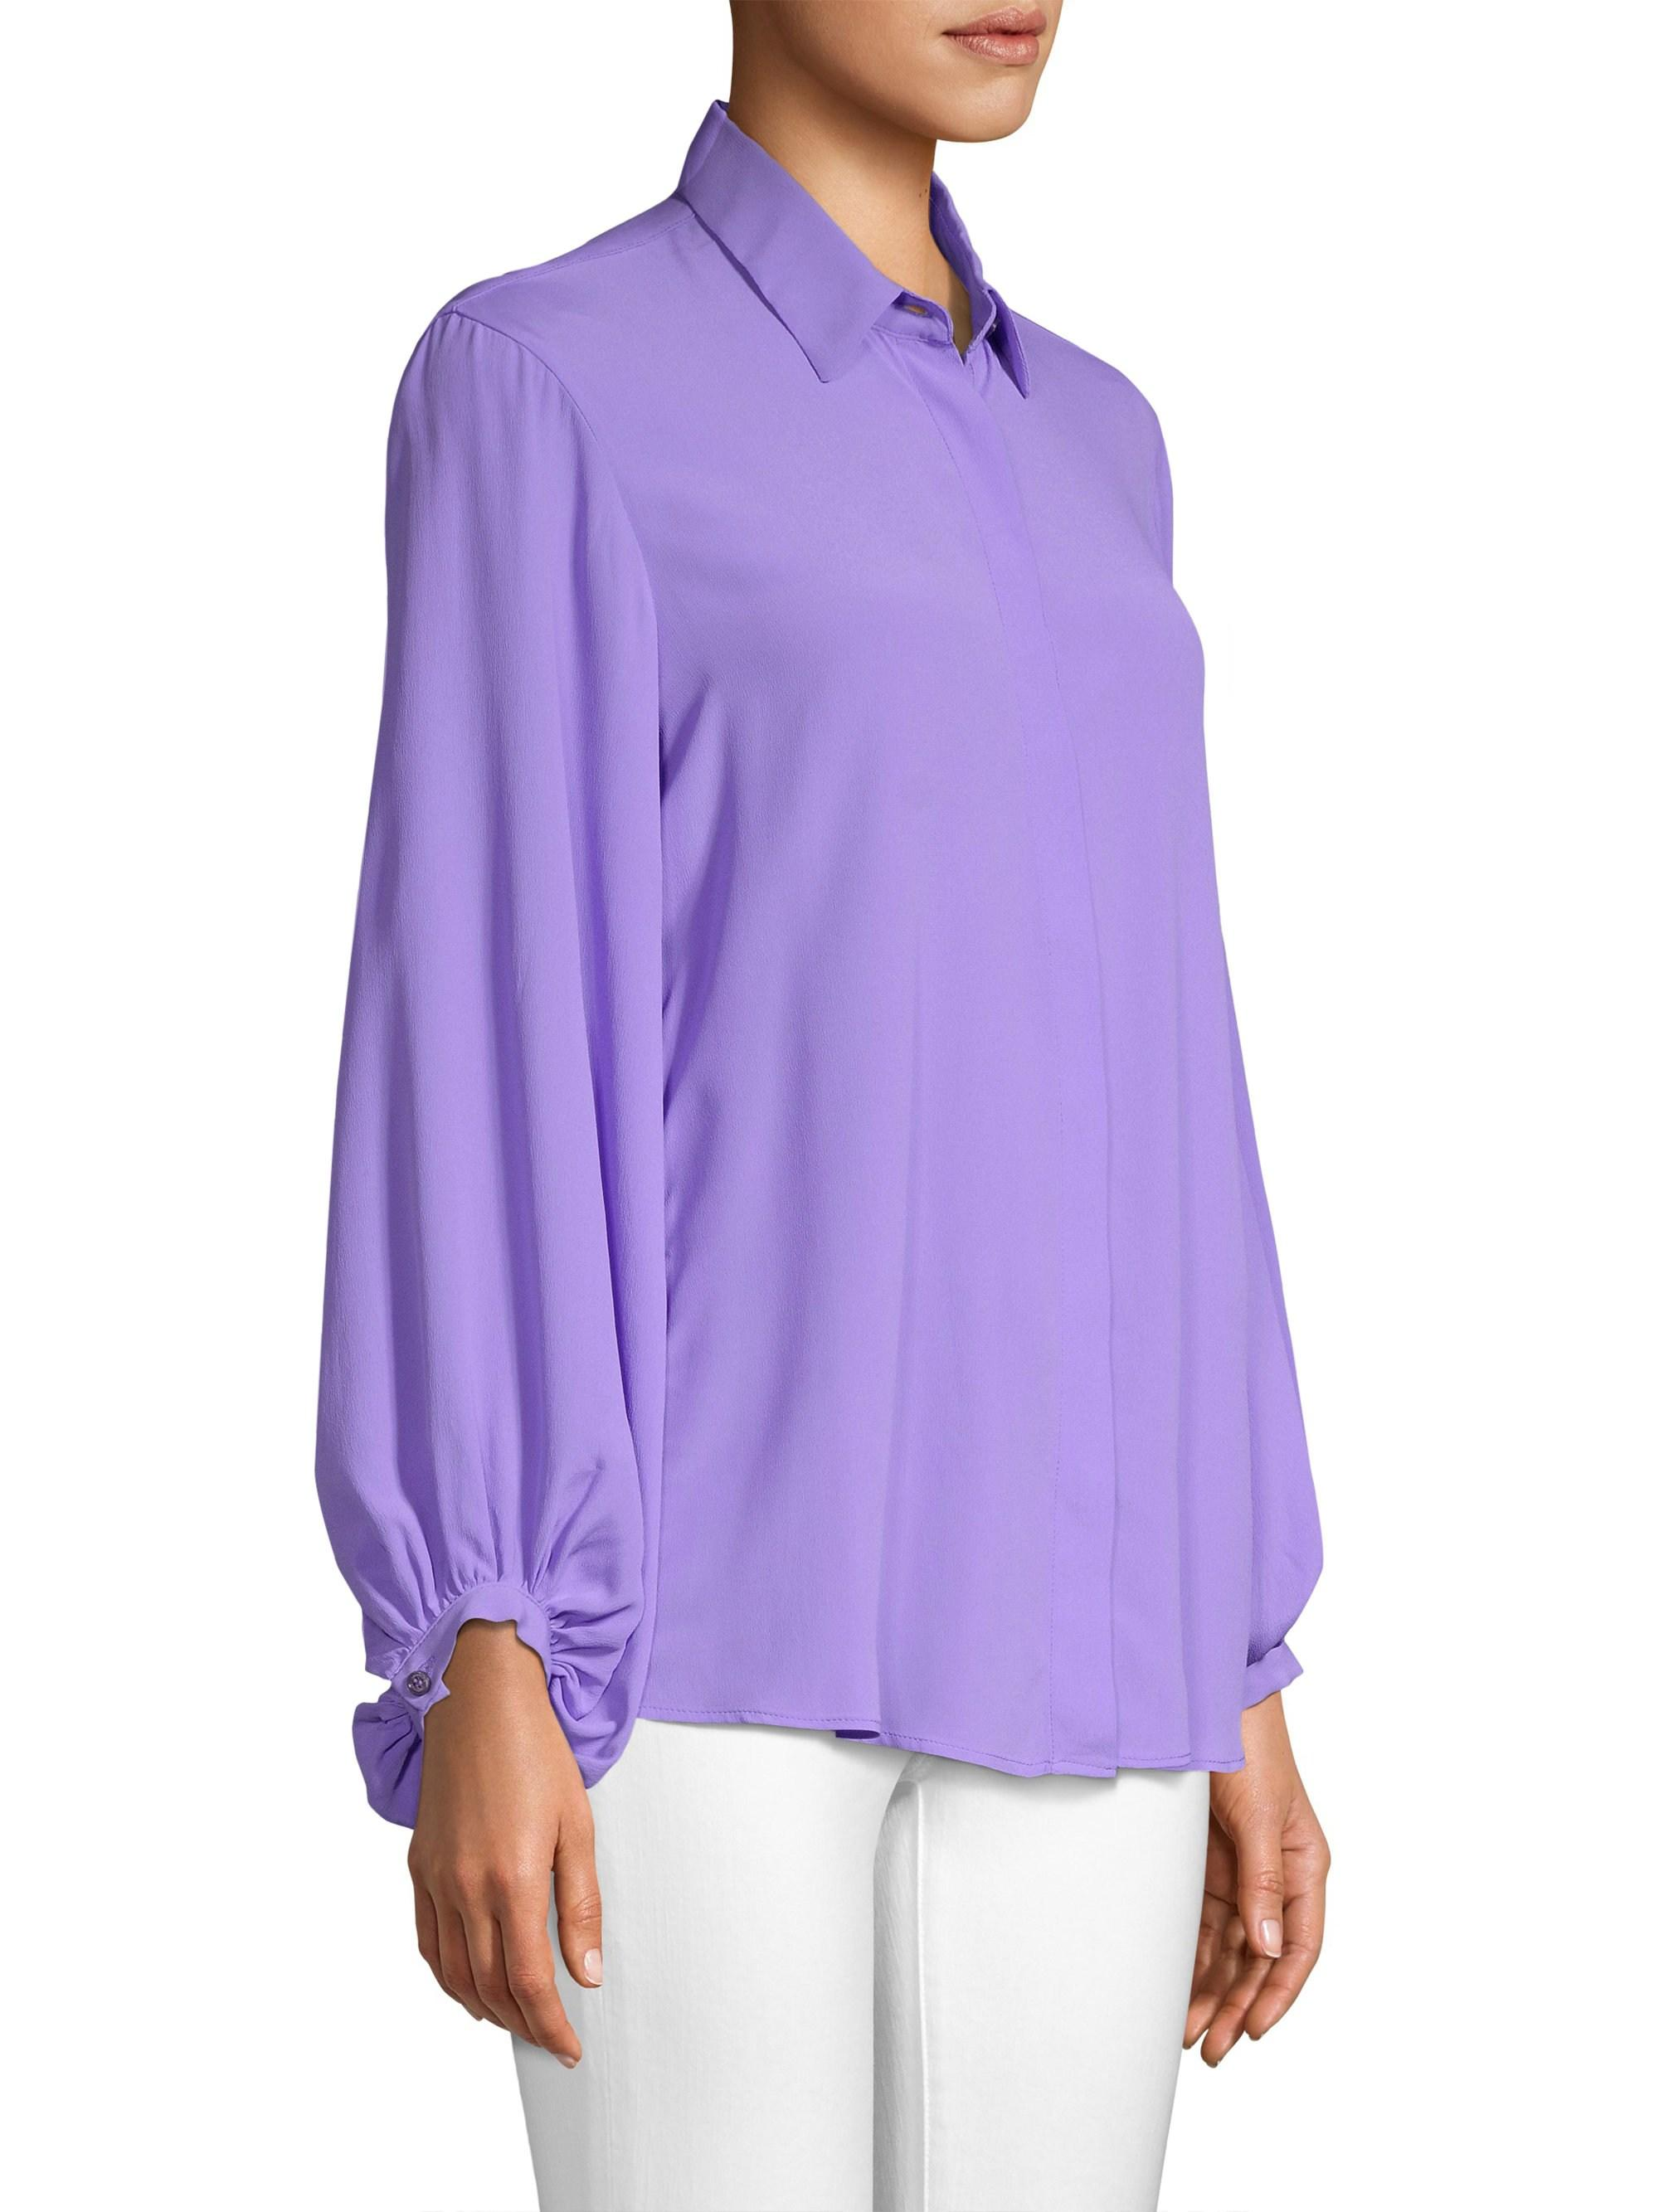 756067a7e10c94 Beatrice B. - Purple Women's Silk-blend Button-front Blouse - Lilac -. View  fullscreen